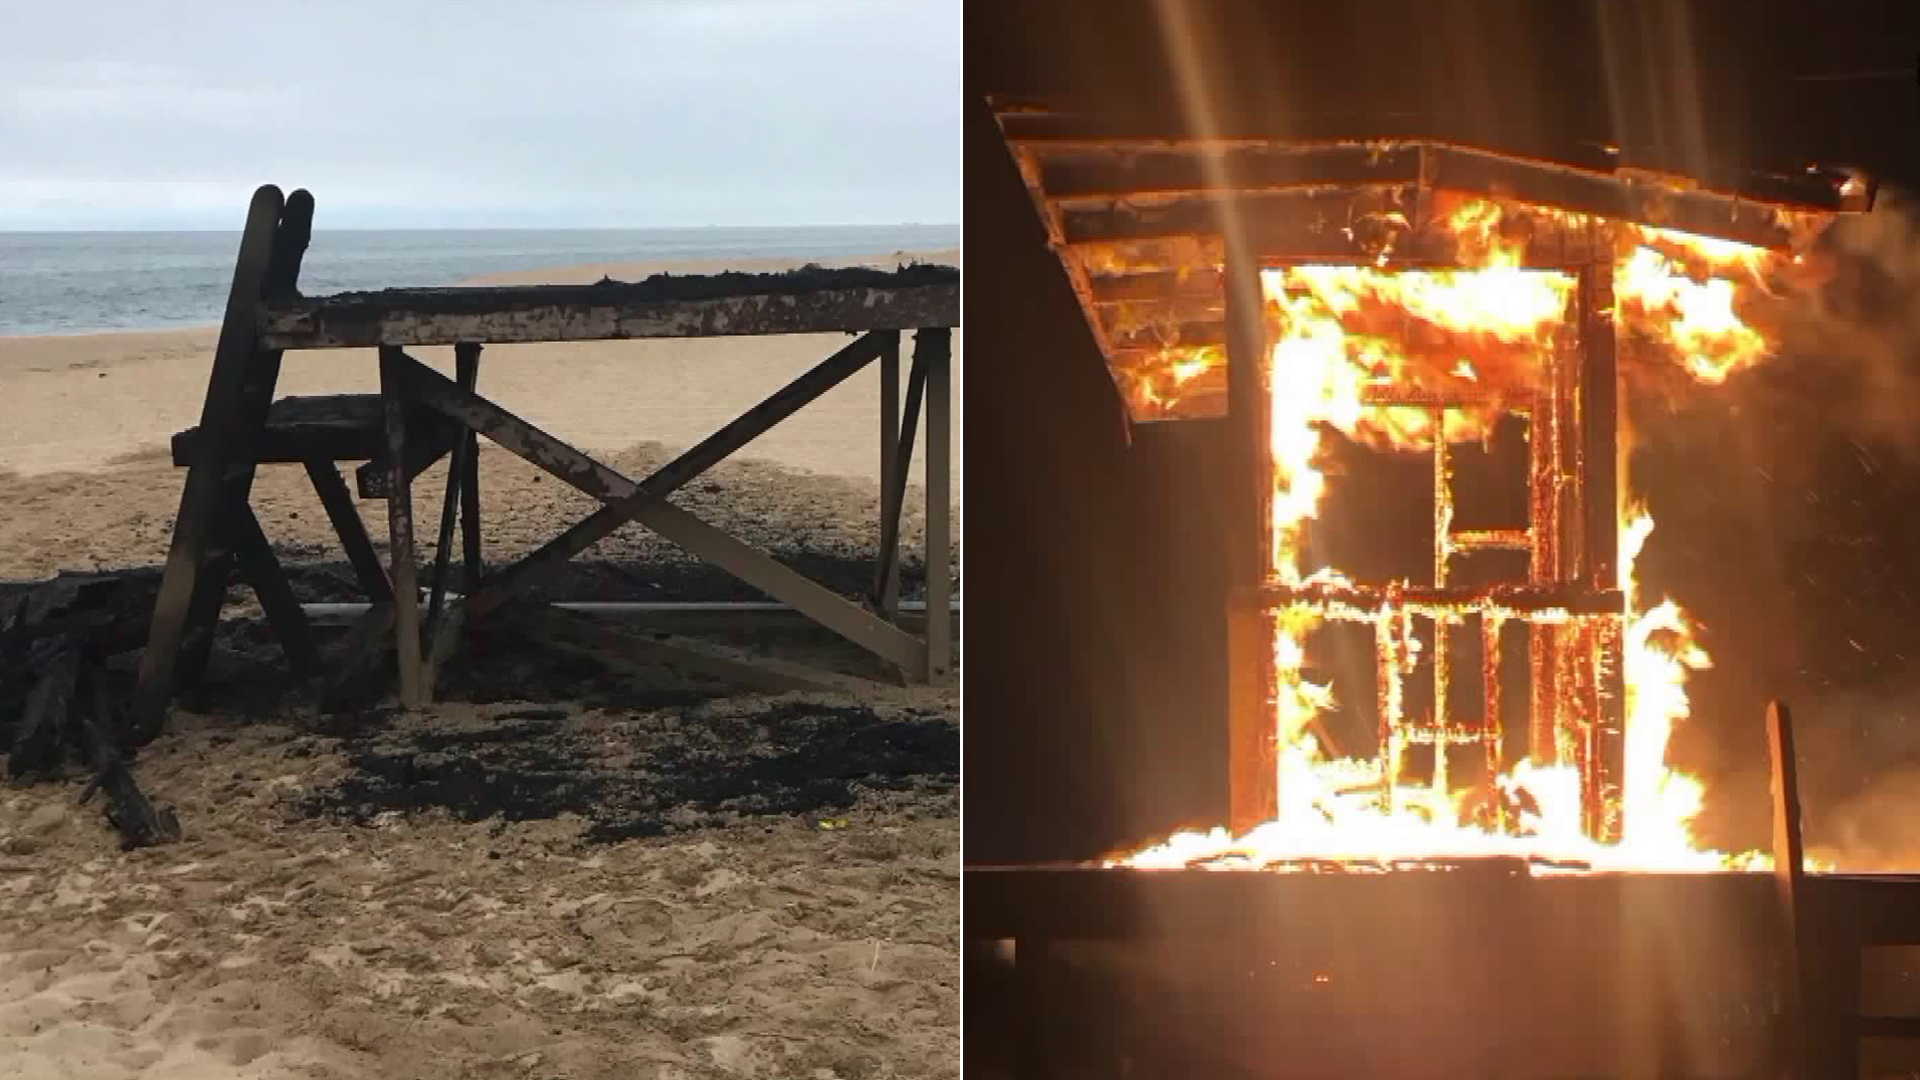 A lifeguard tower in Newport Beach is seen before and after it burned in a suspected arson incident on June 20, 2019, in photos released by the Newport Beach Fire Department.